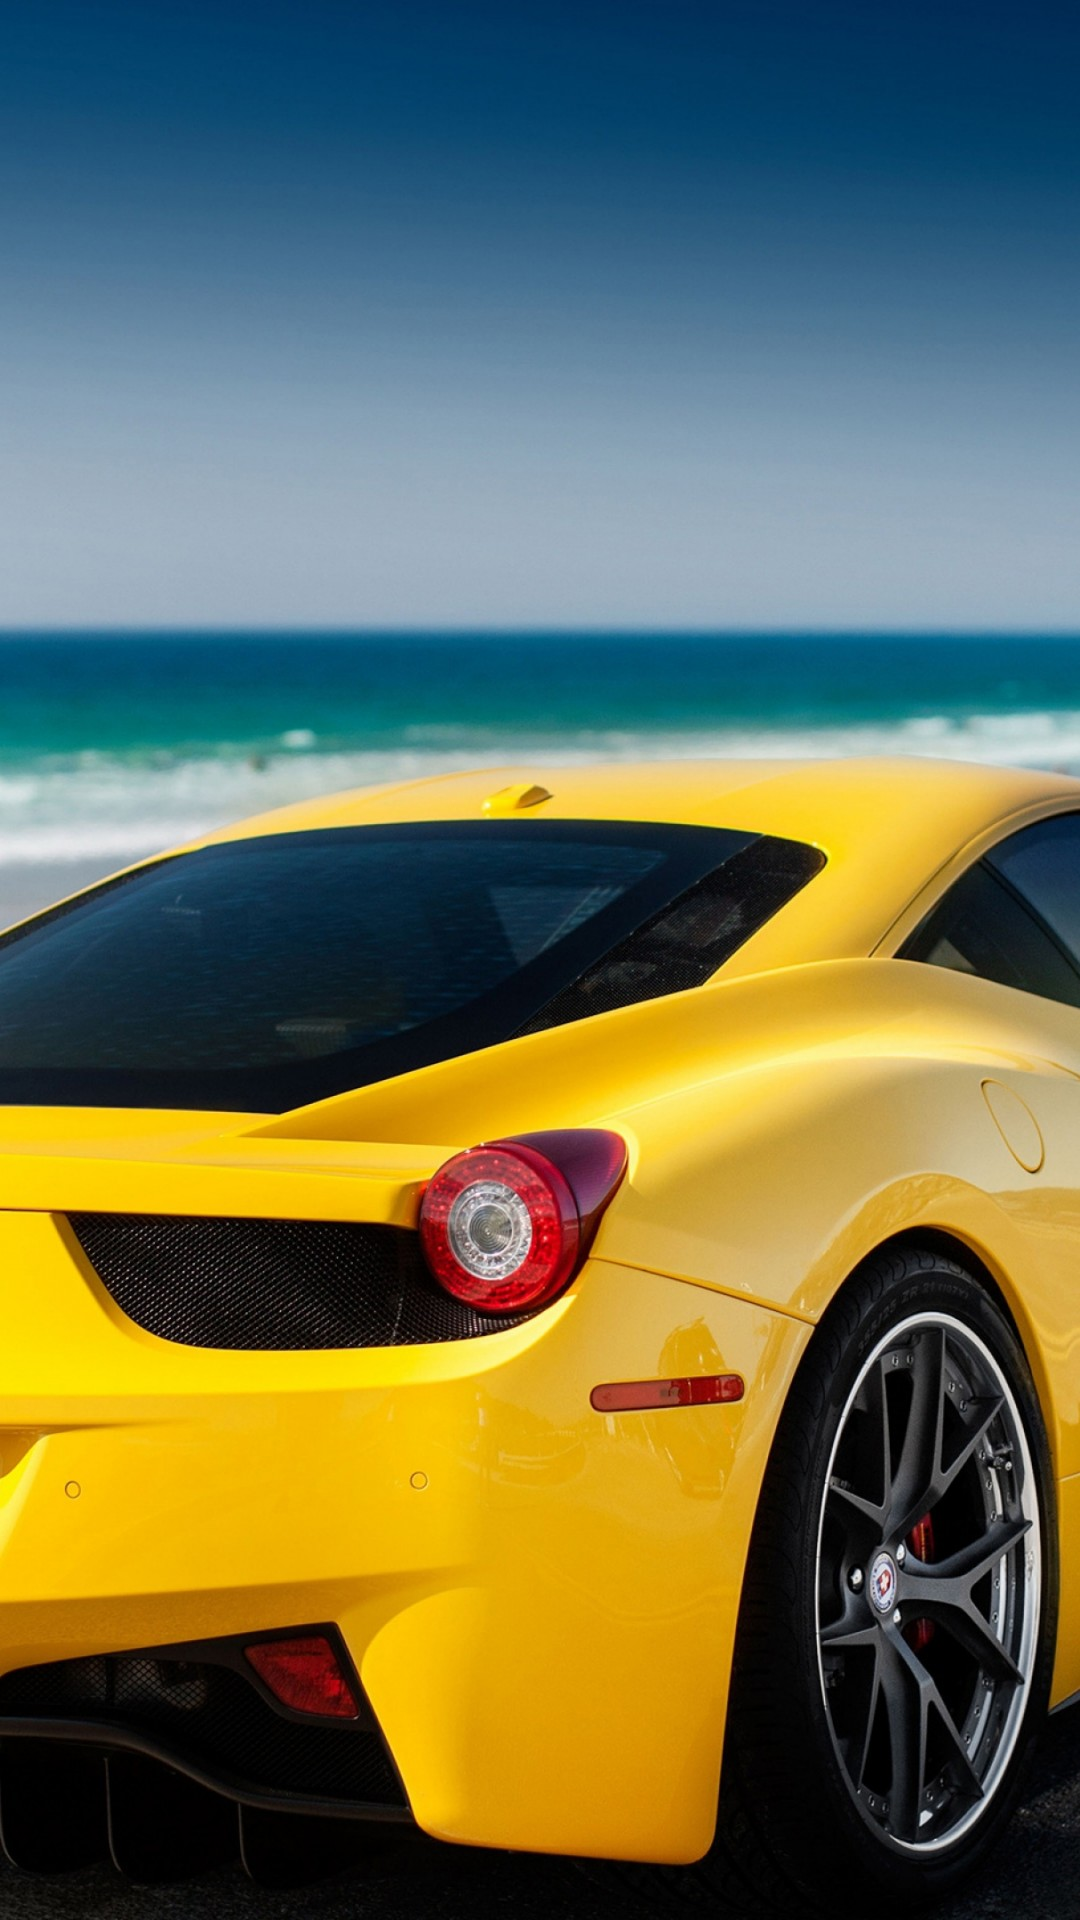 Ferrari Car On Beach Hd 2099534 Hd Wallpaper Backgrounds Download